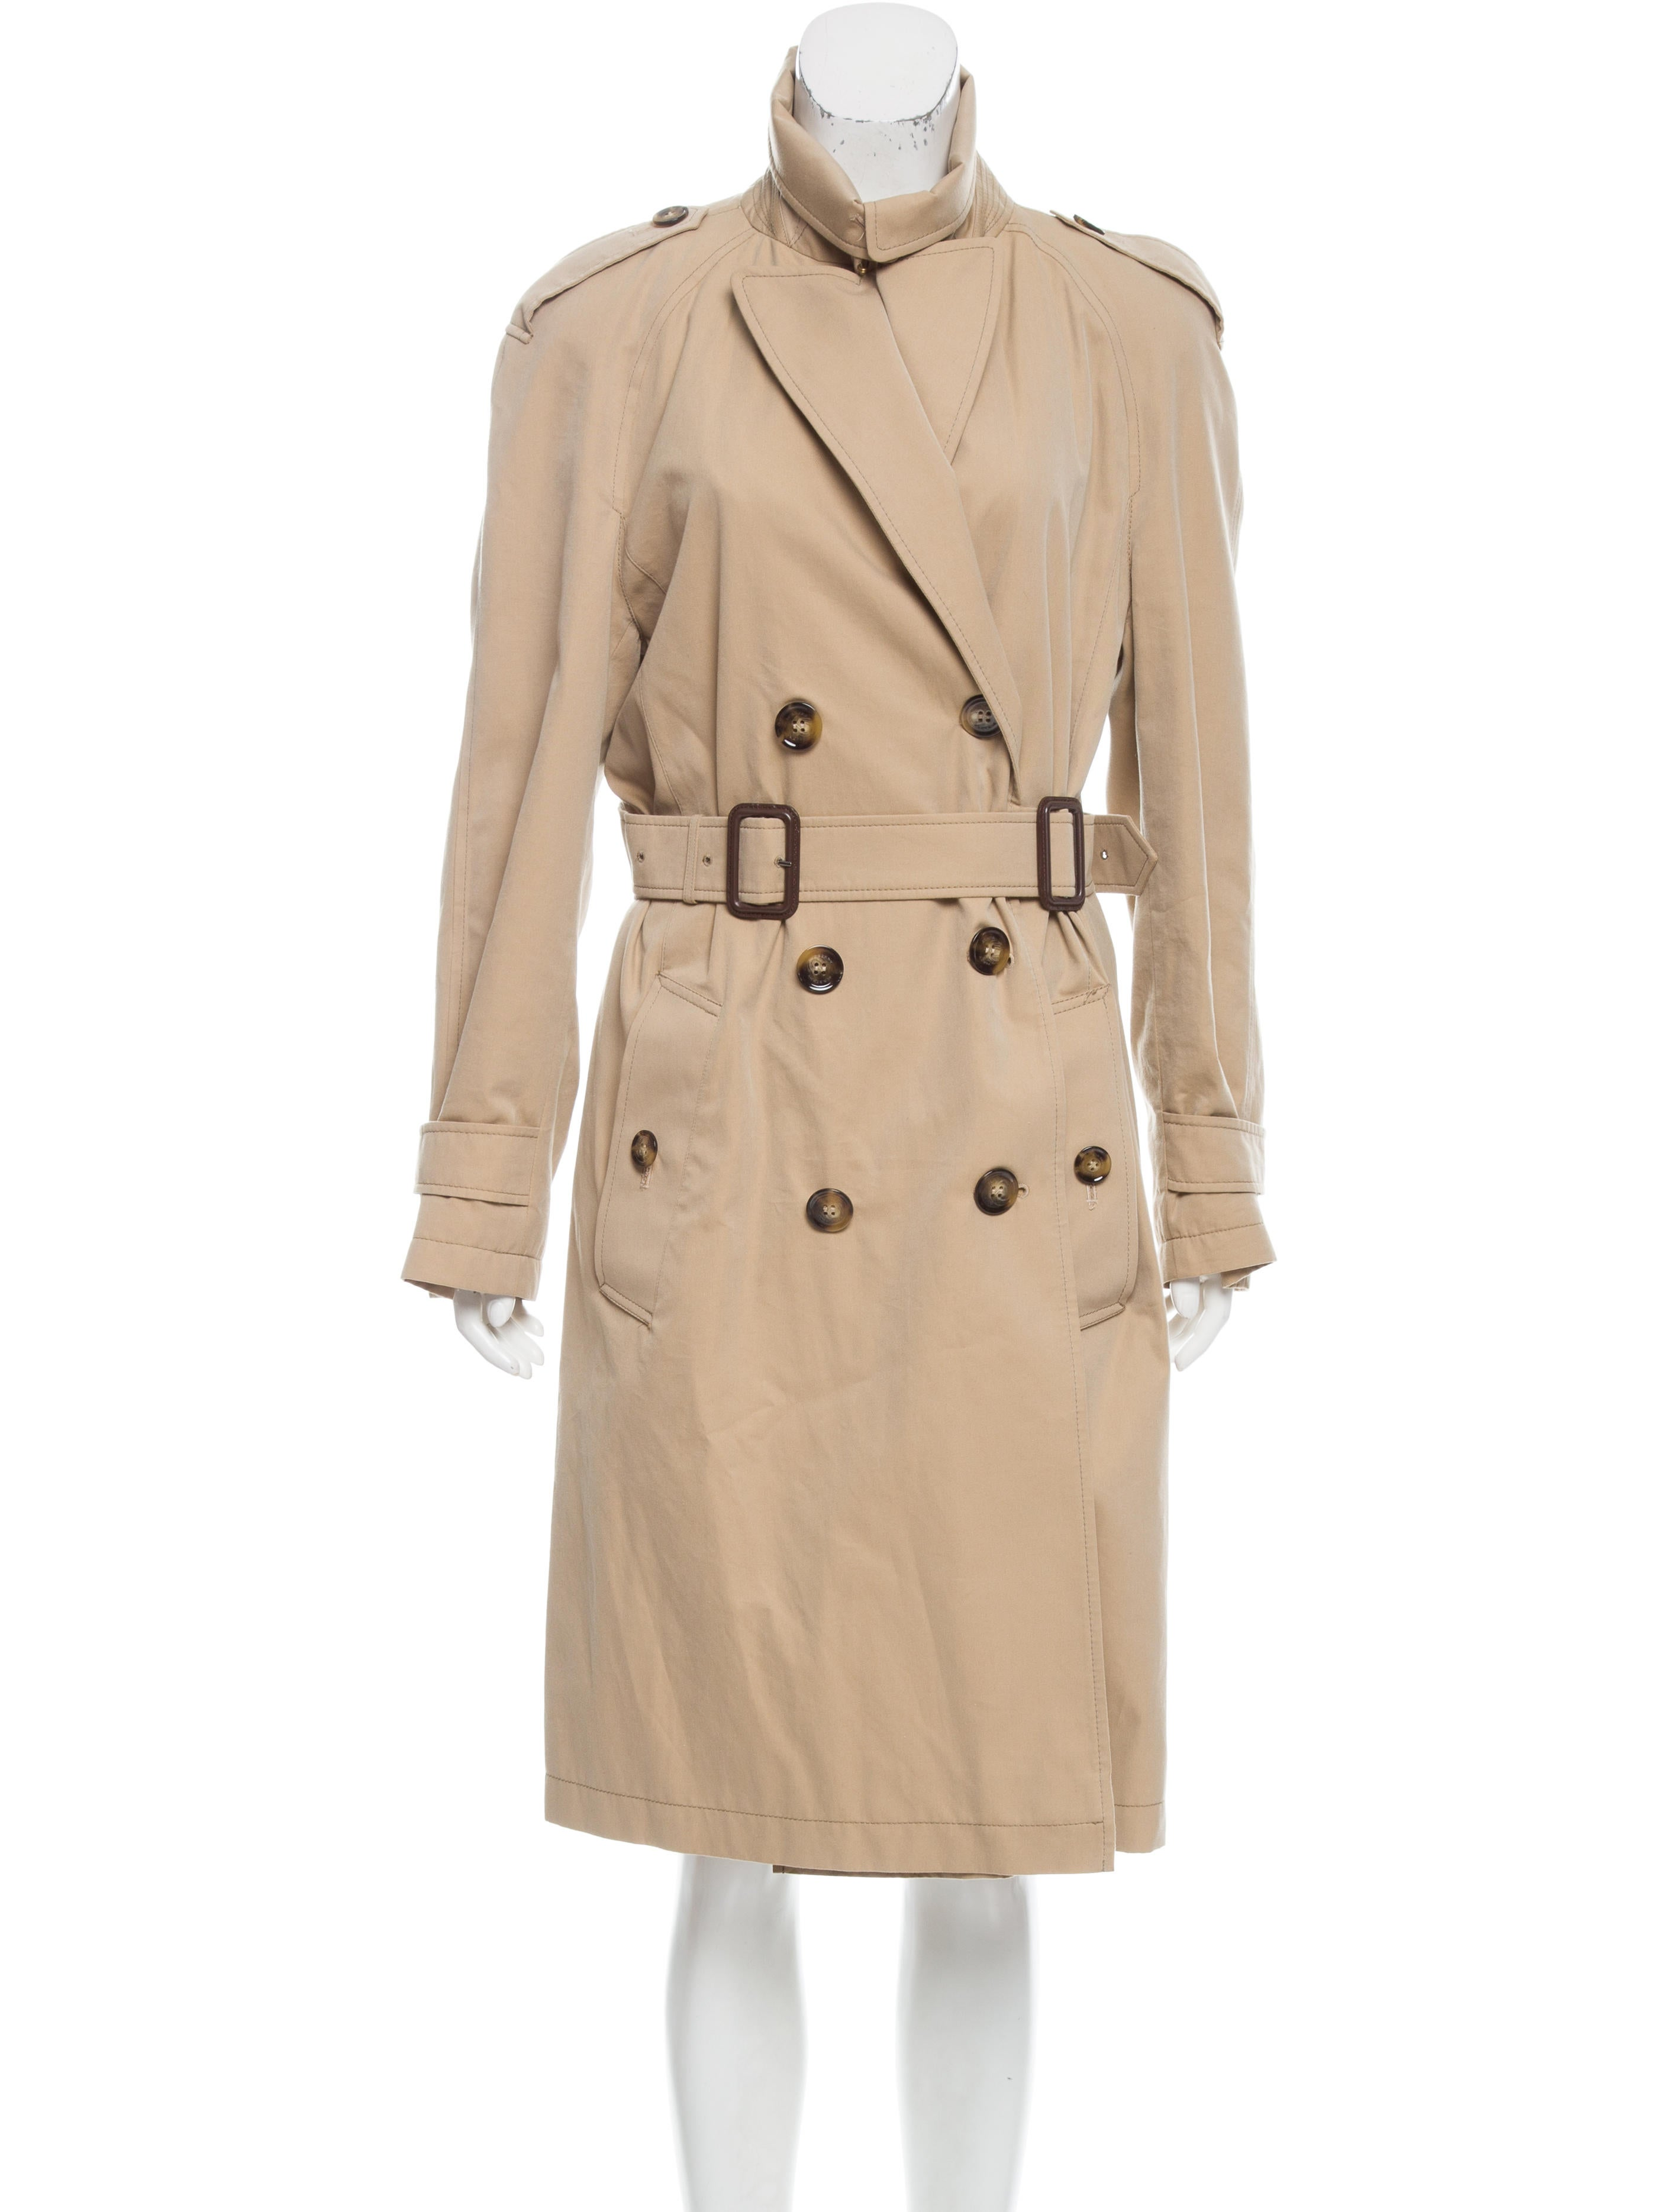 burberry double breasted trench coat clothing bur79698. Black Bedroom Furniture Sets. Home Design Ideas